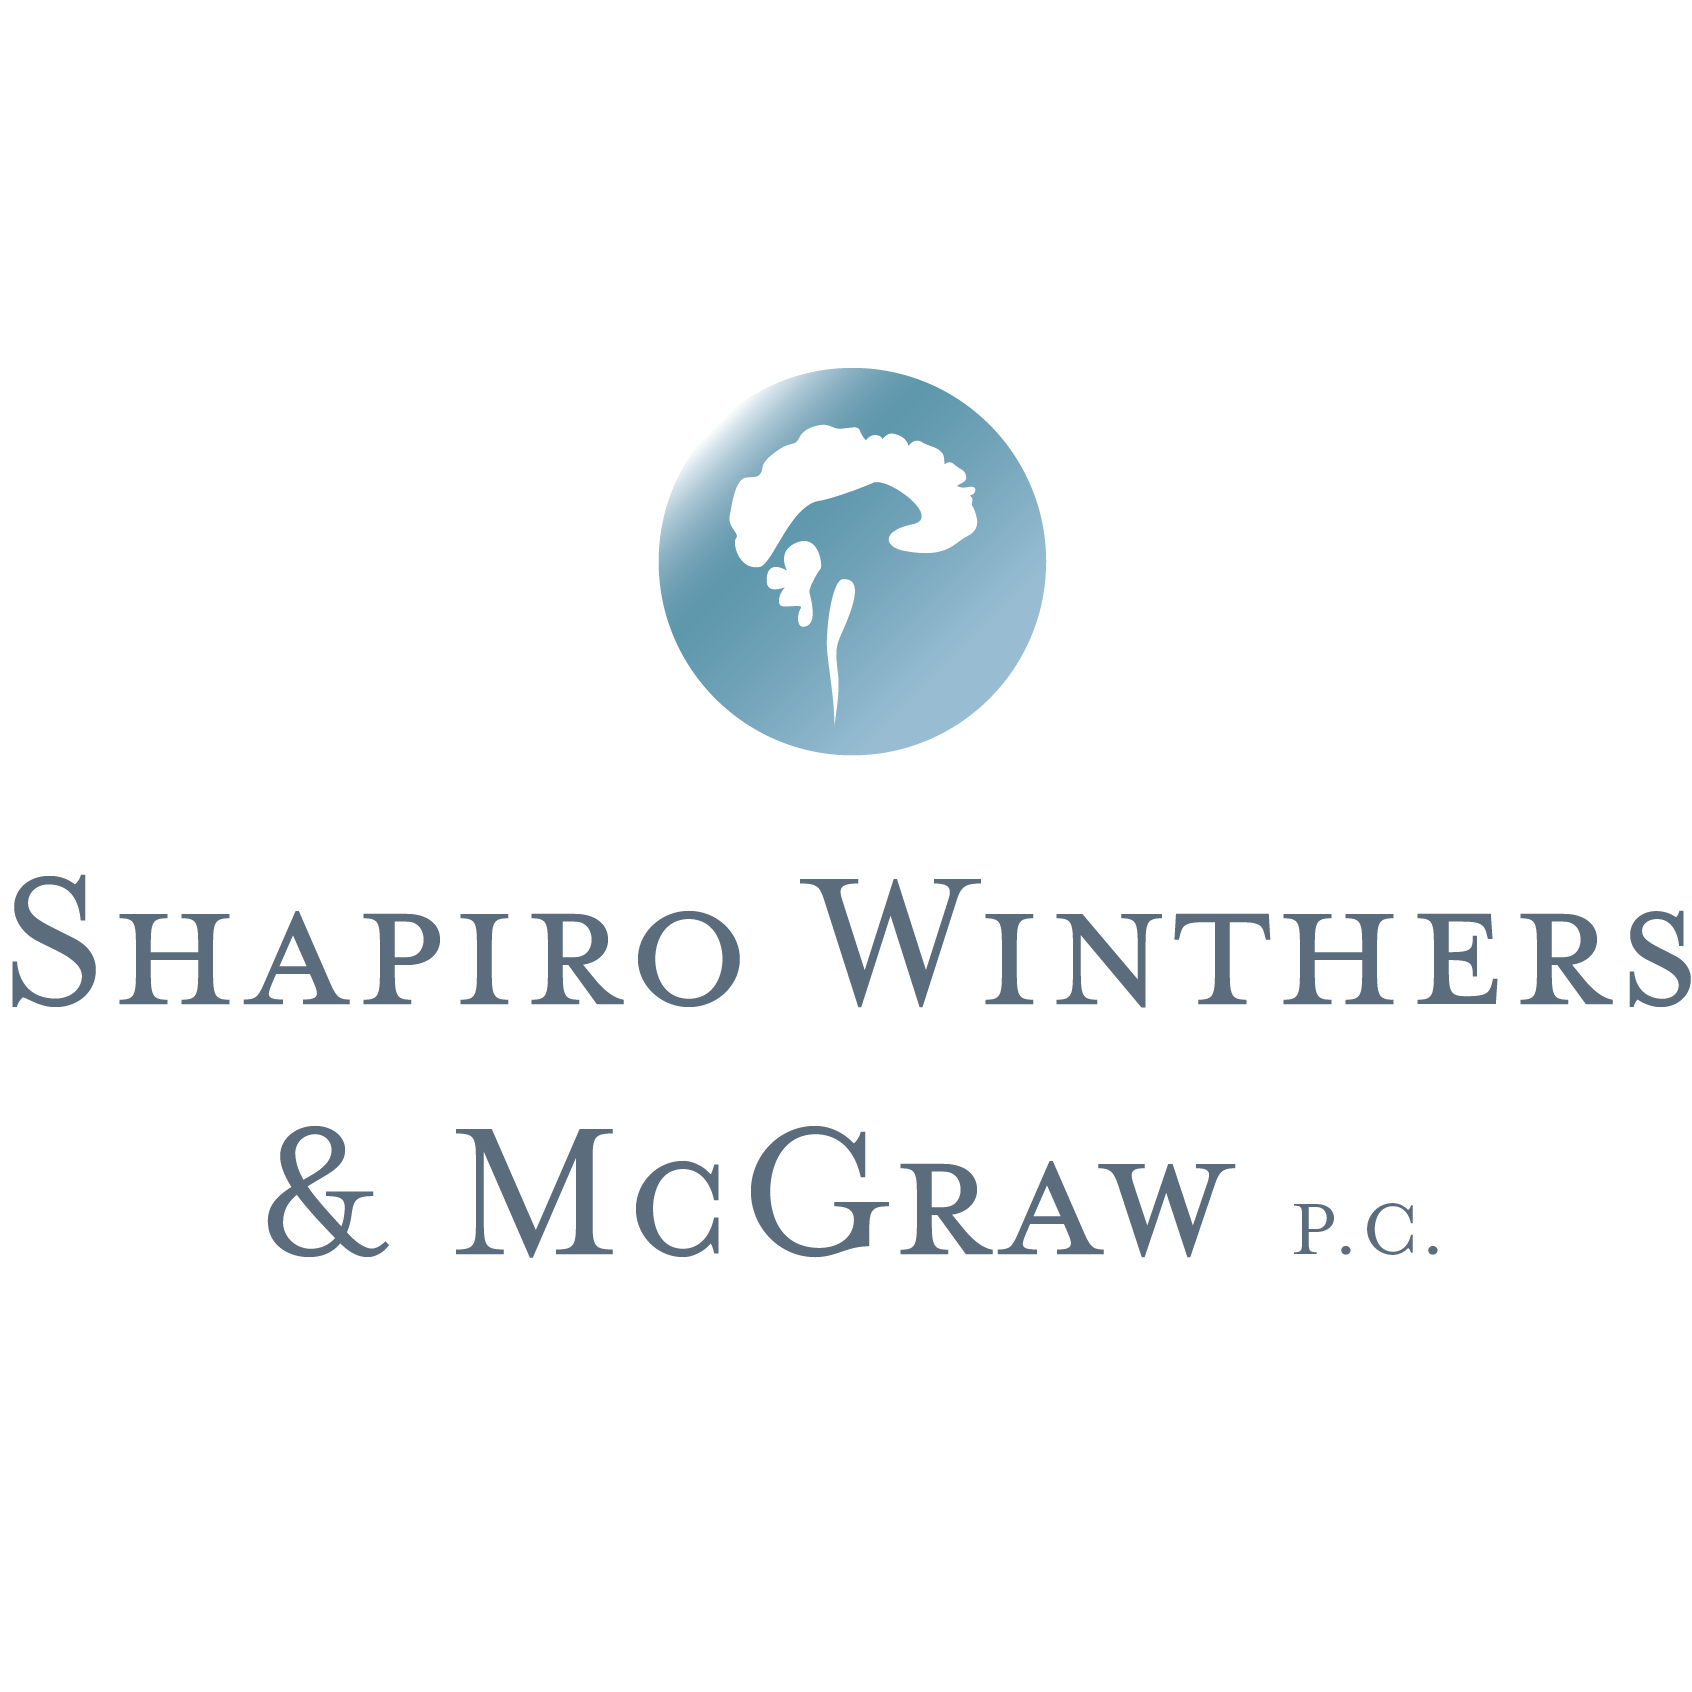 Shapiro Winthers & McGraw P.C. - Denver, CO - Attorneys